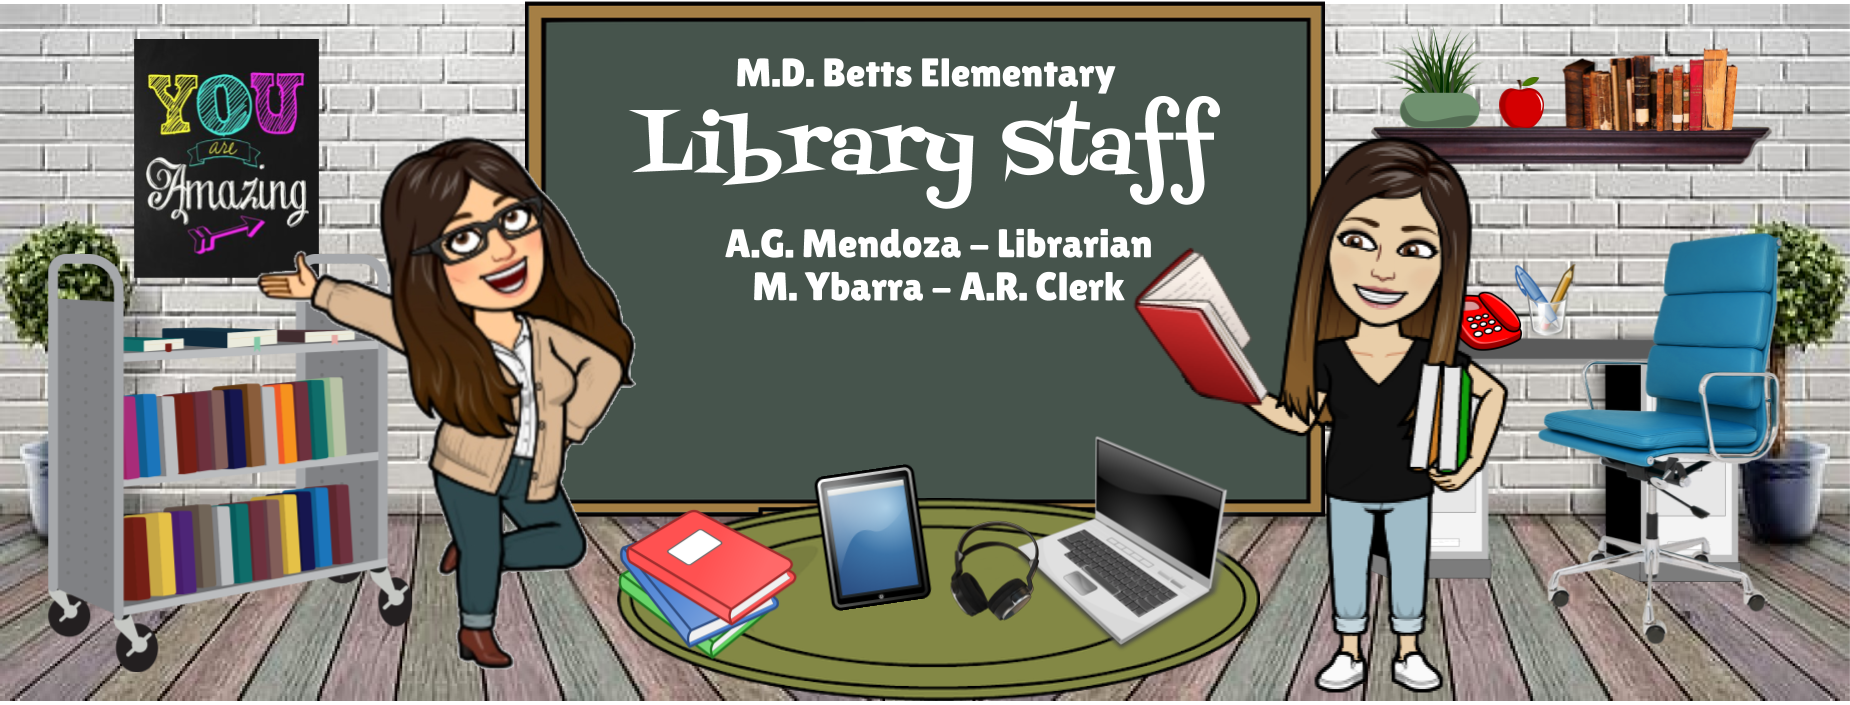 Image of Bitmoji Staff - Library Staff